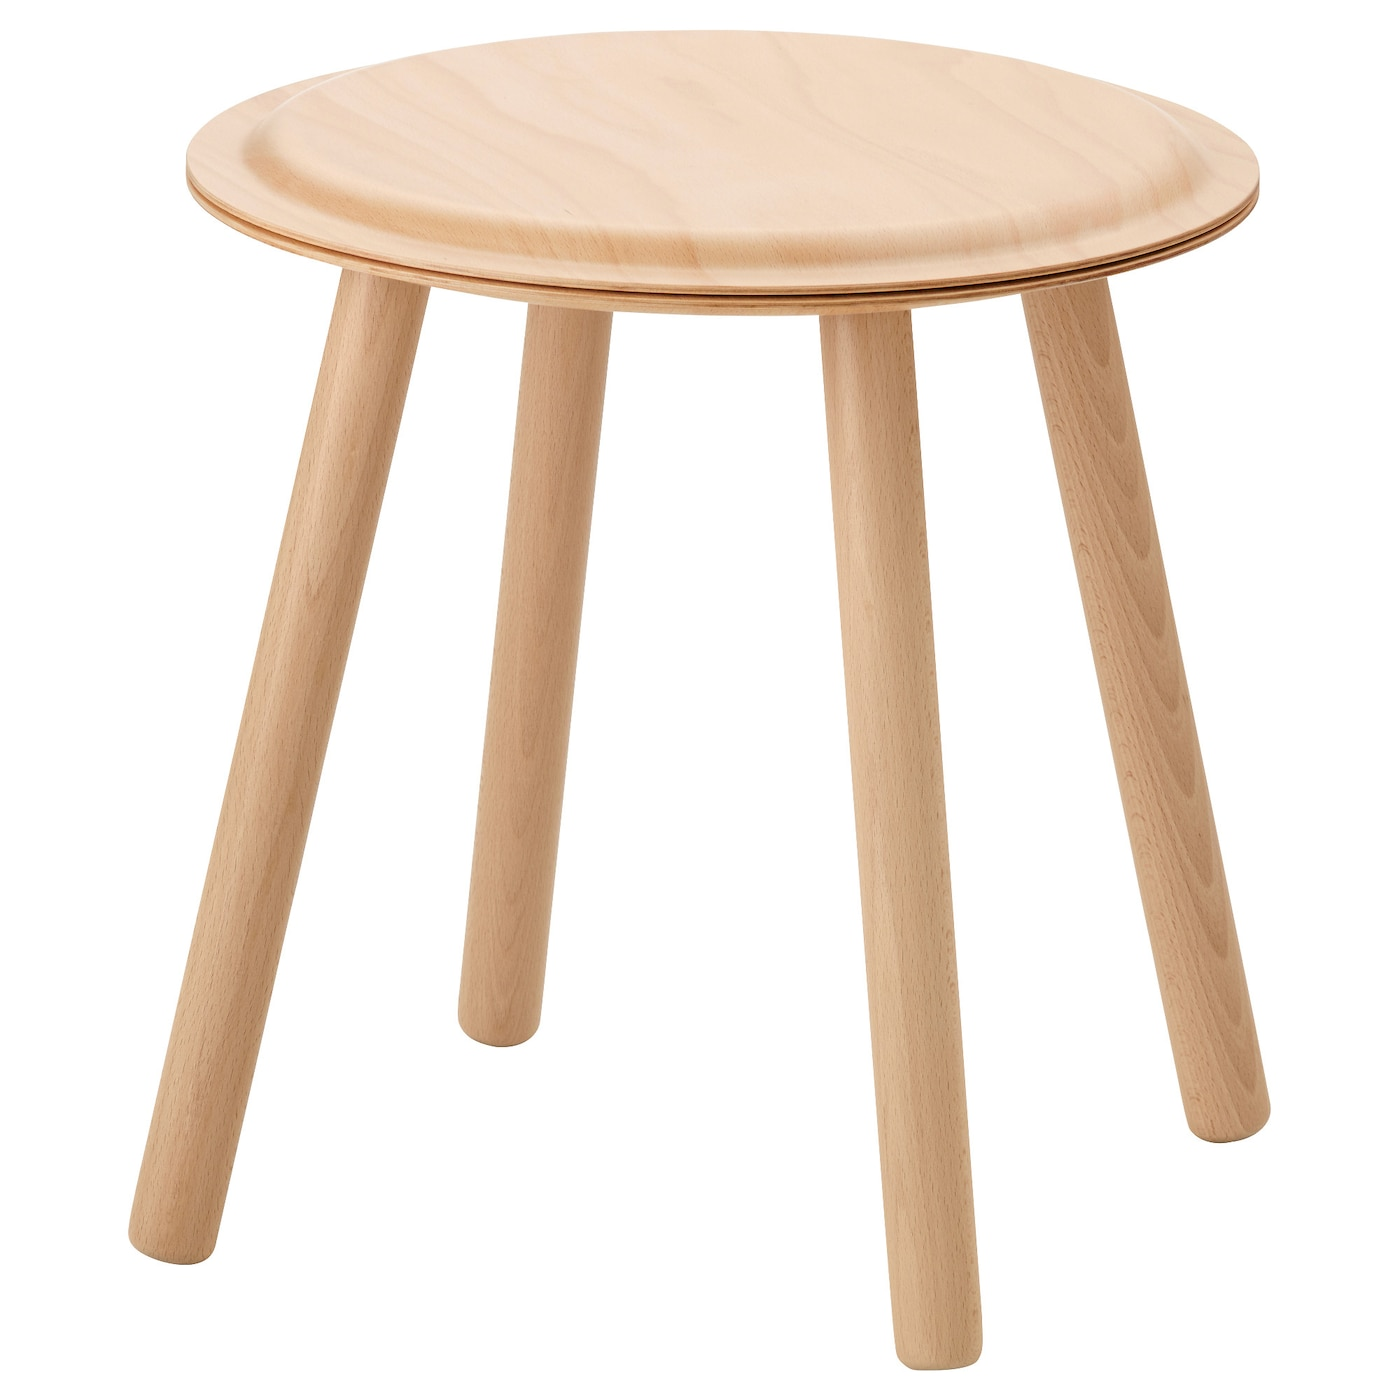 Ikea ps 2017 side table stool beech ikea for Table en pin ikea